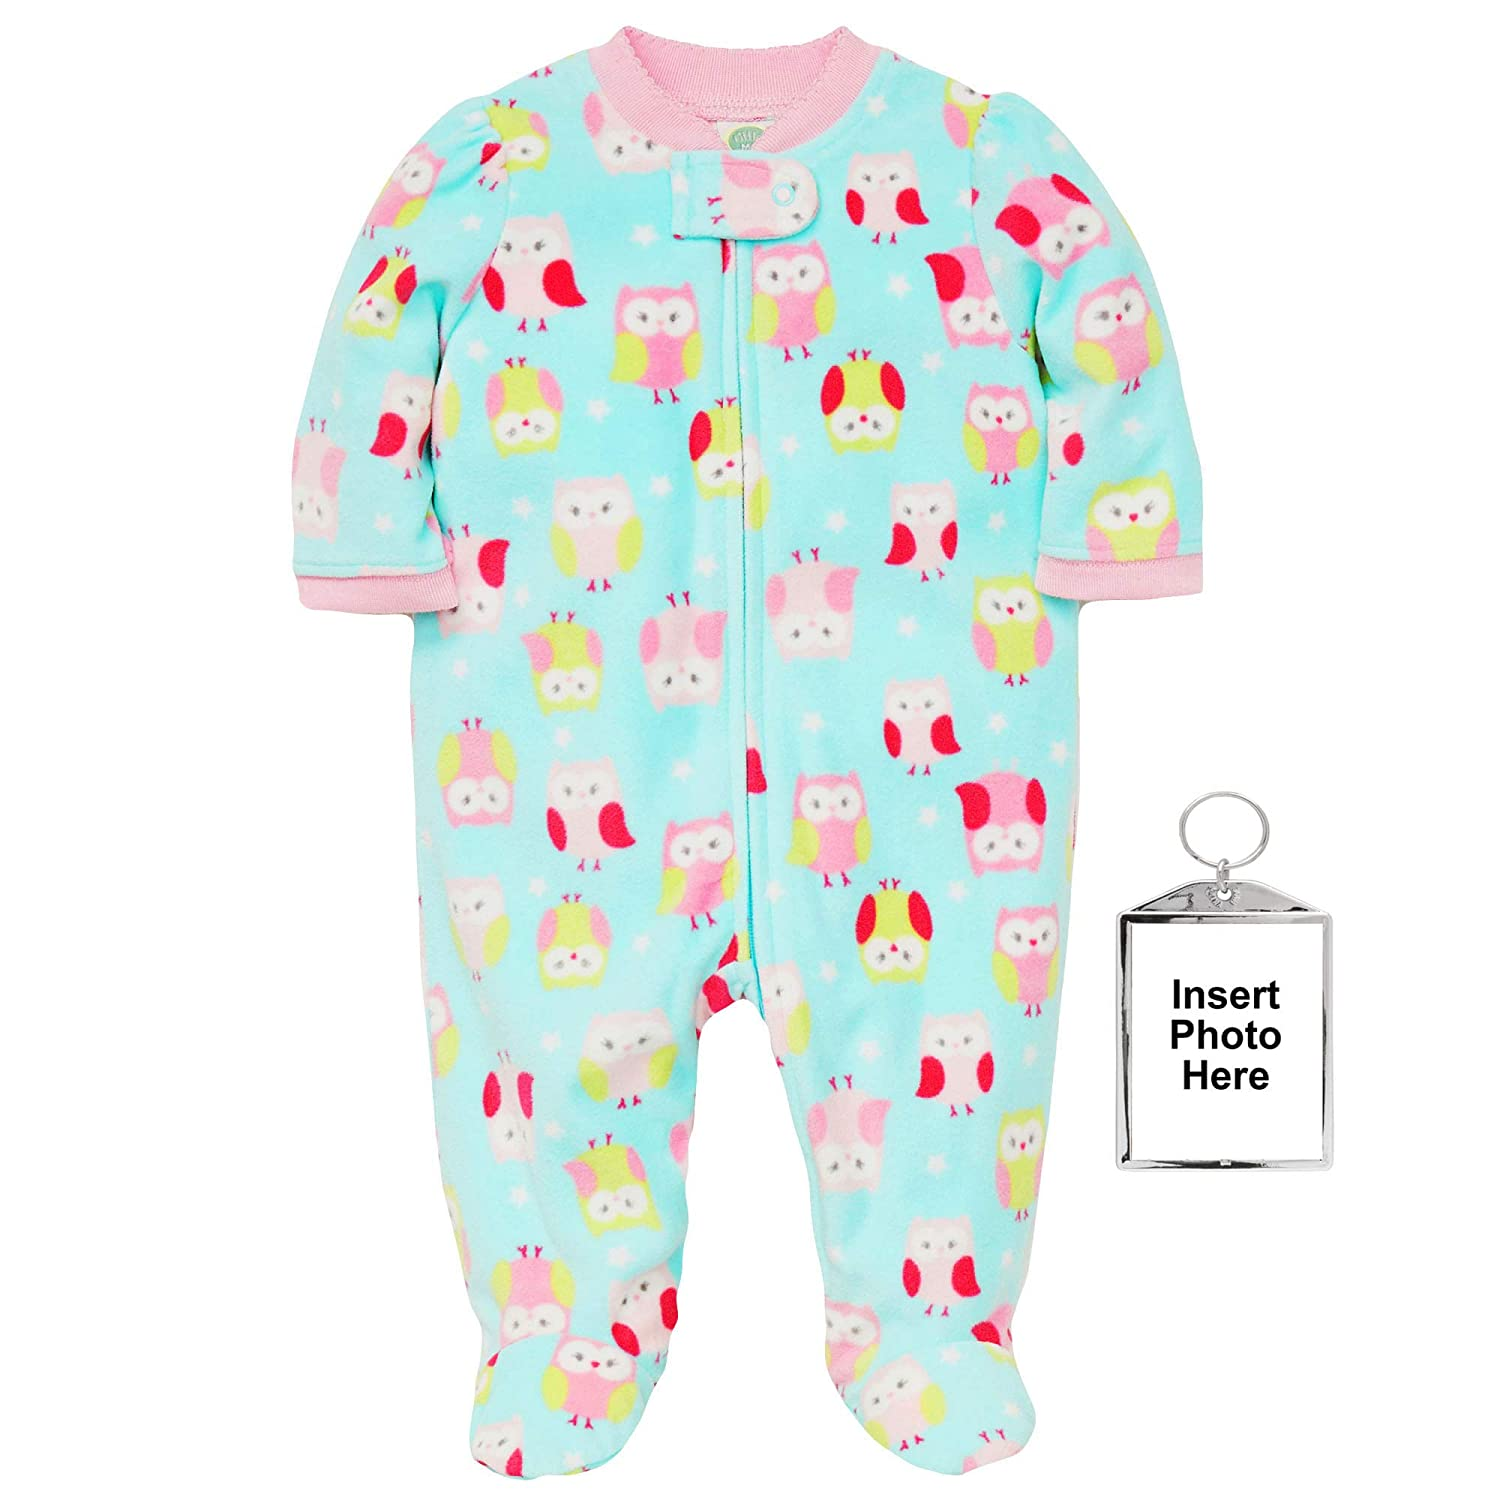 a489fd193b Amazon.com  Little Me Winter Fleece Baby Pajamas Footed Blanket Sleeper  Footie Owl Aqua 12 Month  Baby